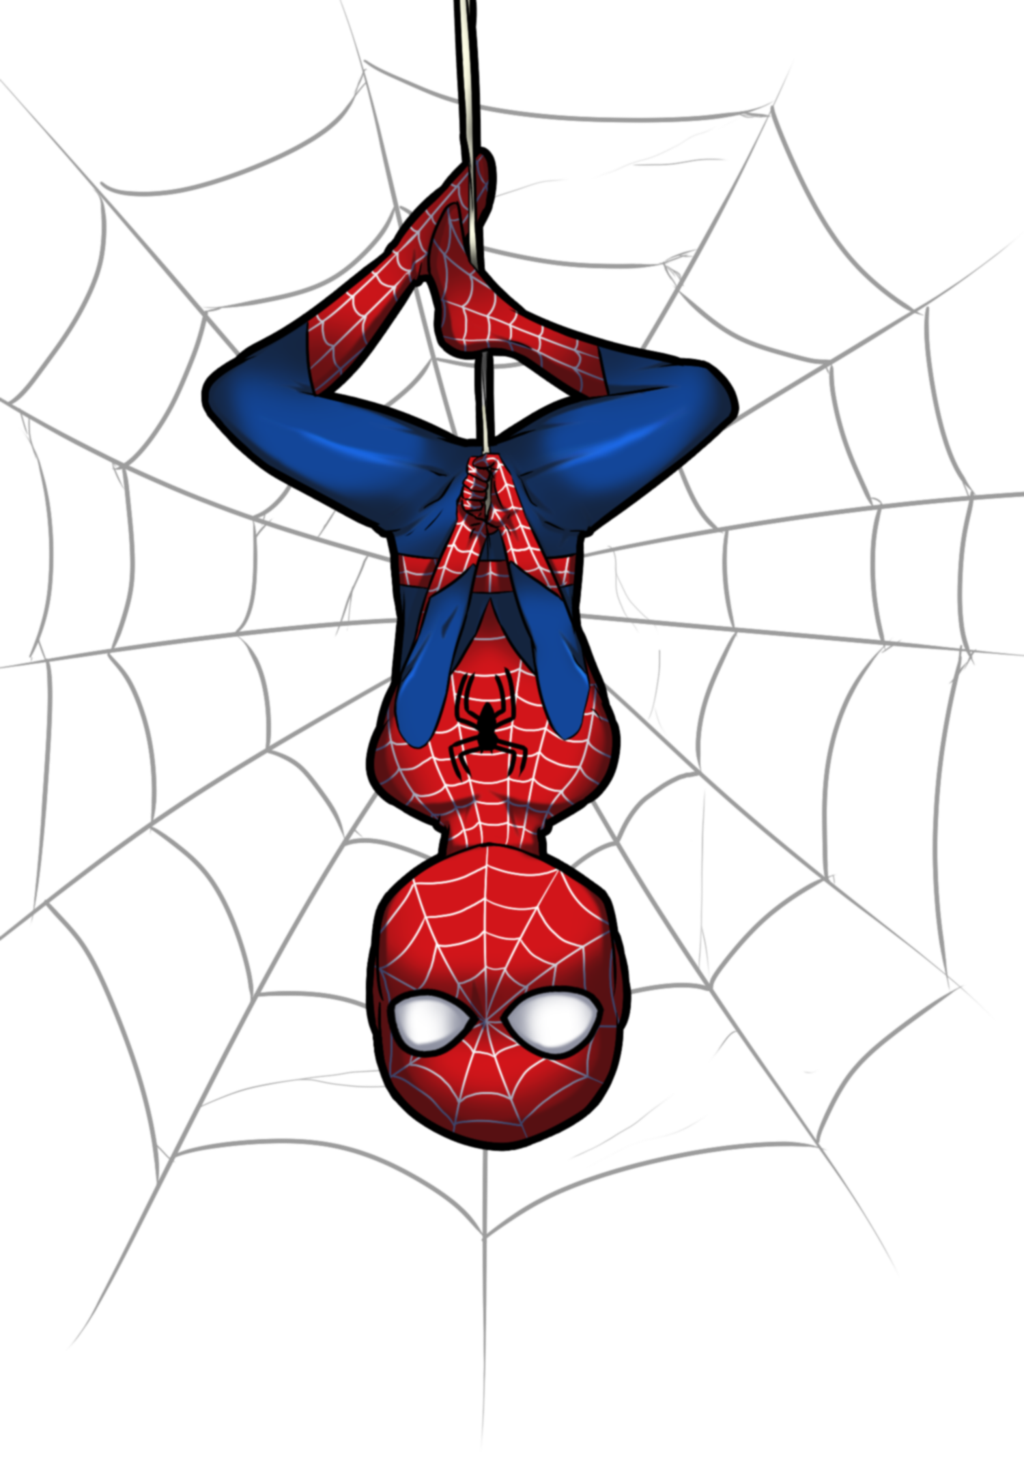 Spiderman upside down. Pin by kfay on